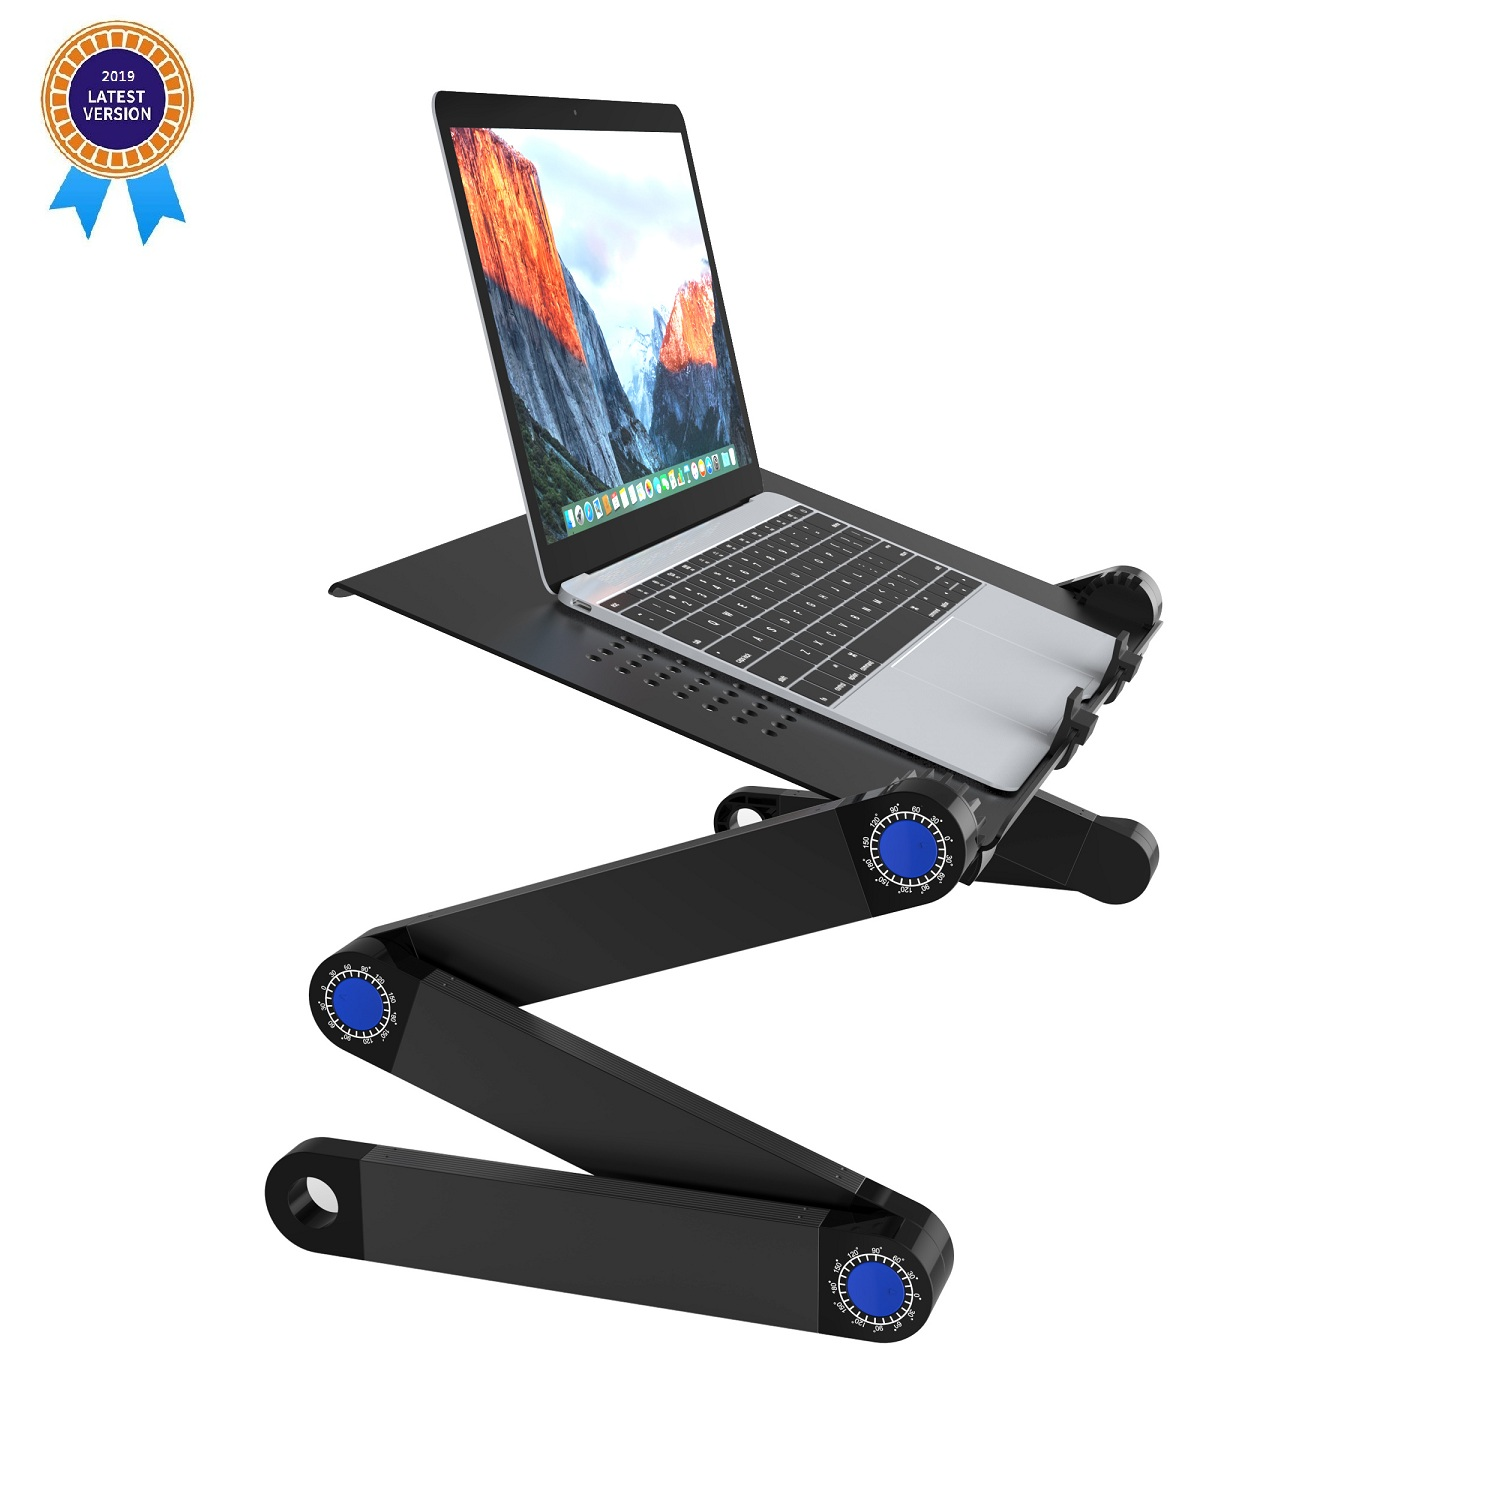 SLYPNOS Executive Office Solutions Portable Adjustable Aluminum Laptop Desk/Stand-Notebook-Light Weight Ergonomic TV Bed Lap Tray Stand Up/Sitting-Black